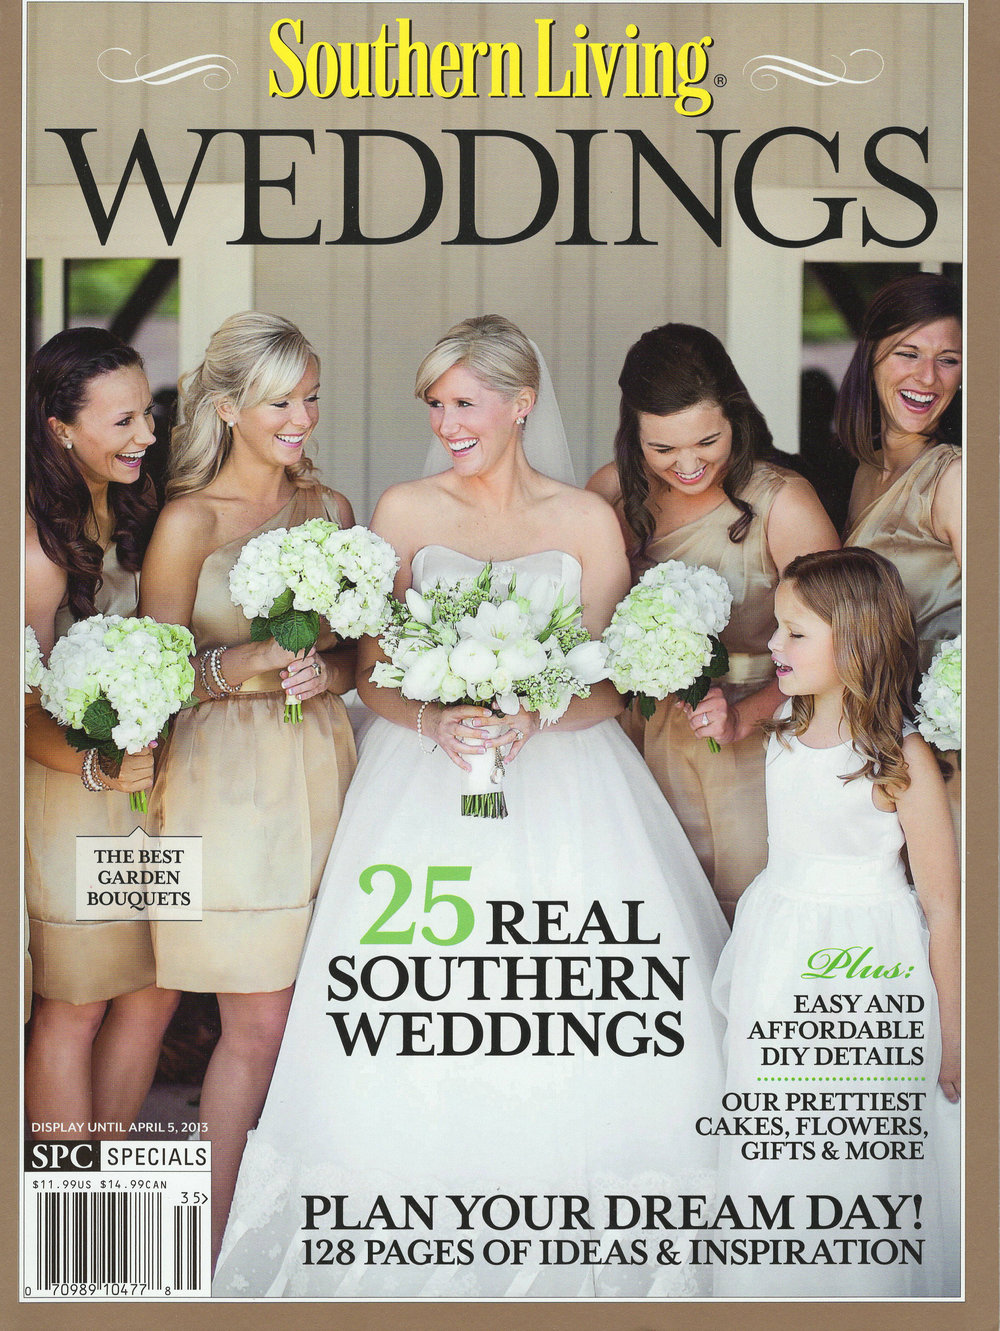 Southern Living Weddings.jpg